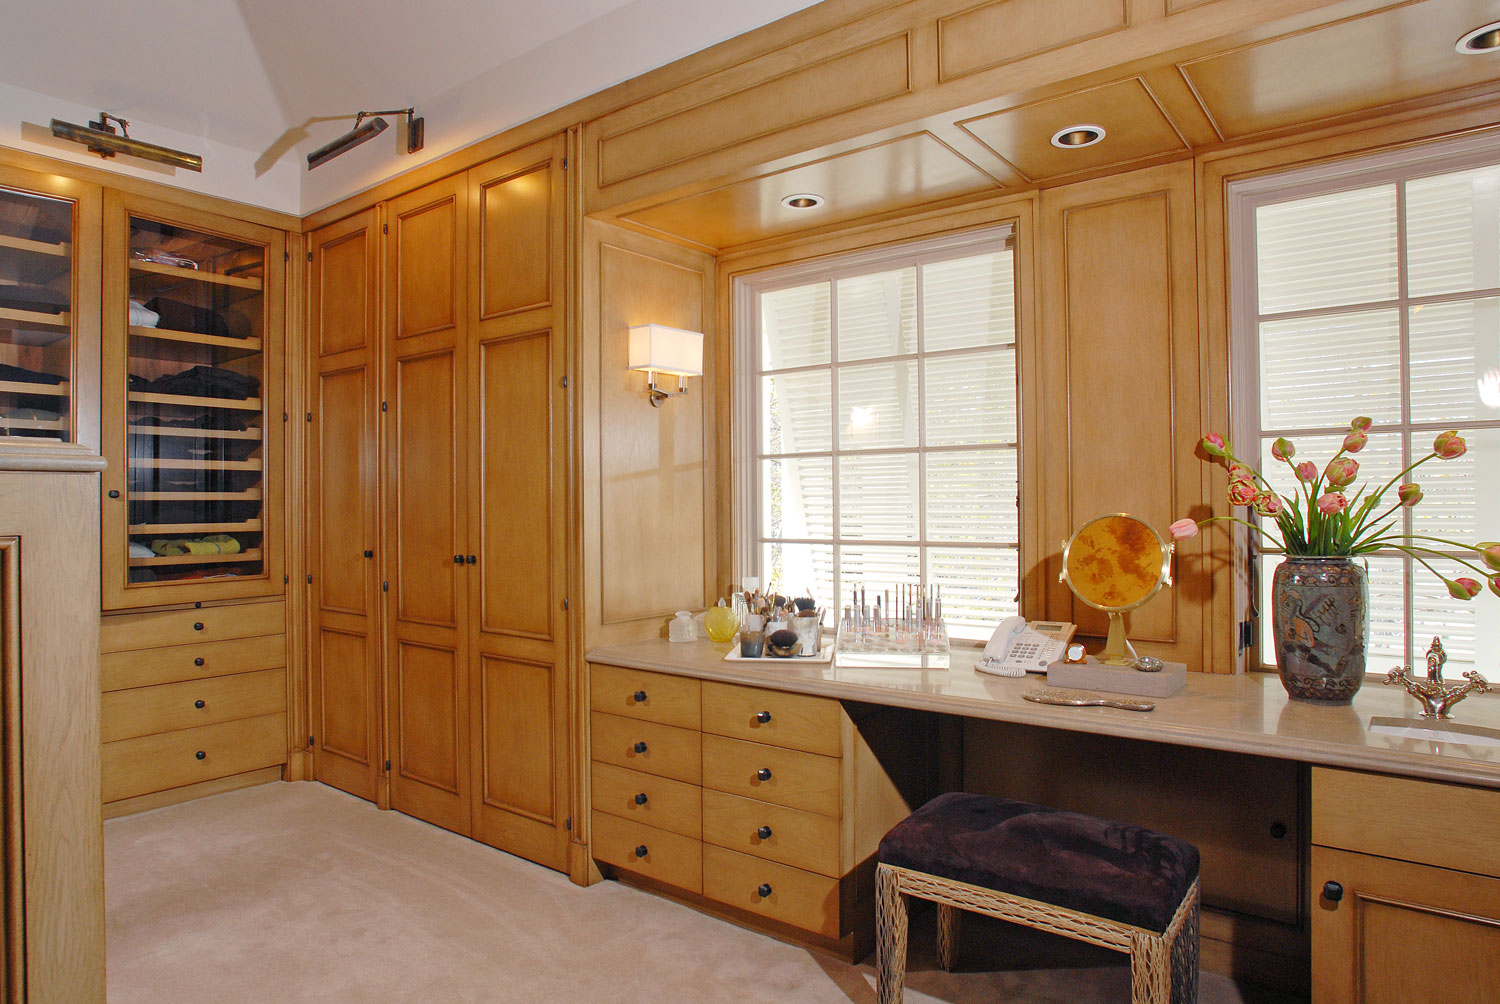 08-A-Master-bedroom-walk-in-closet-gary-drake-general-contractor.jpg